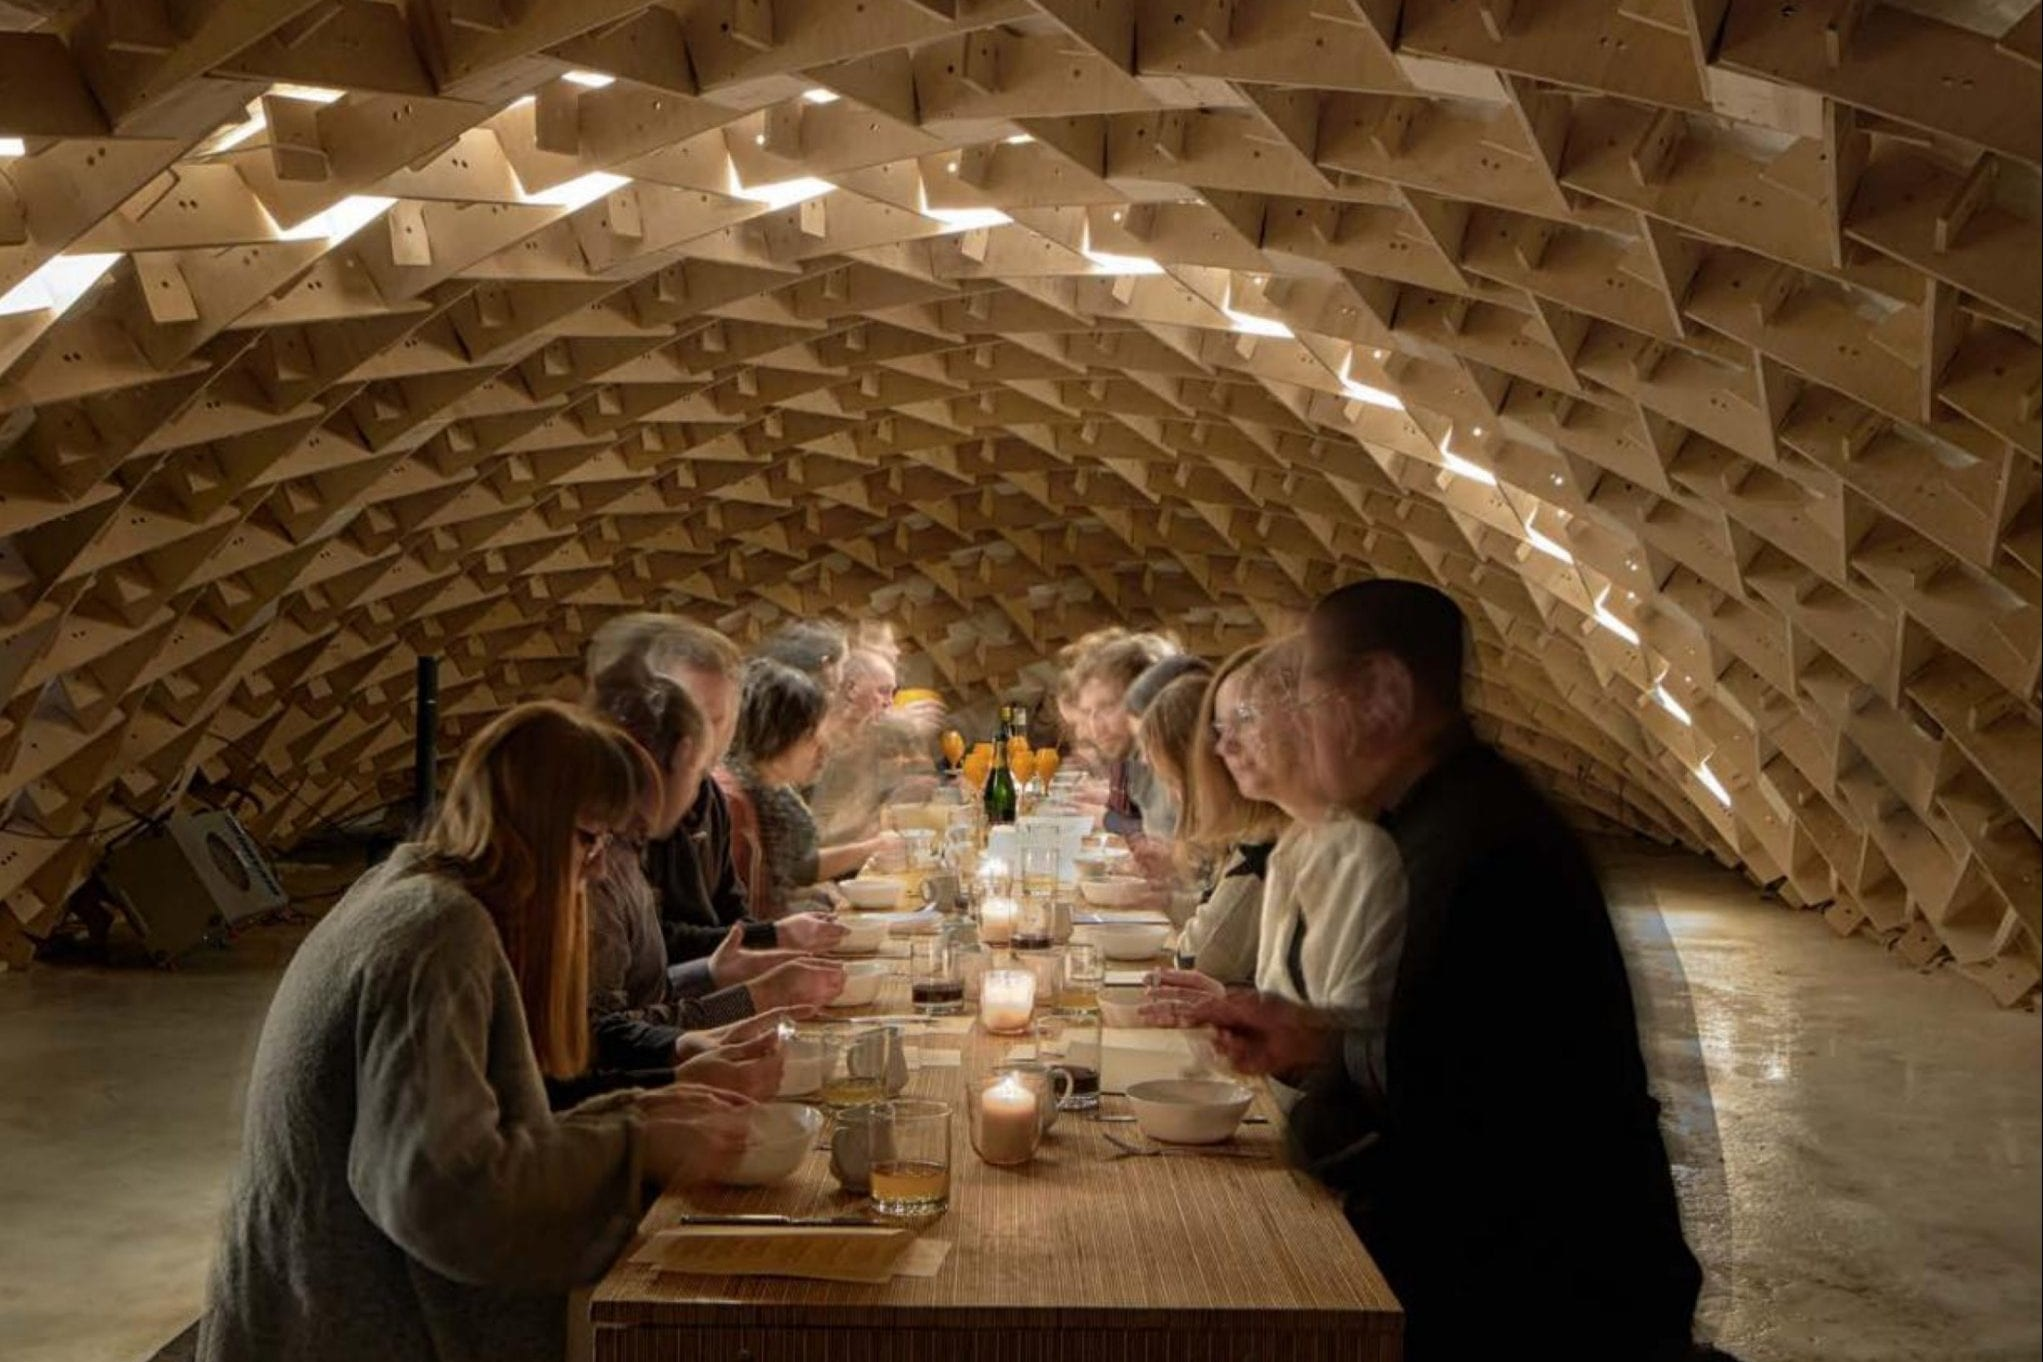 Dining on a Frozen River under a Curved Wooden Tent Structure